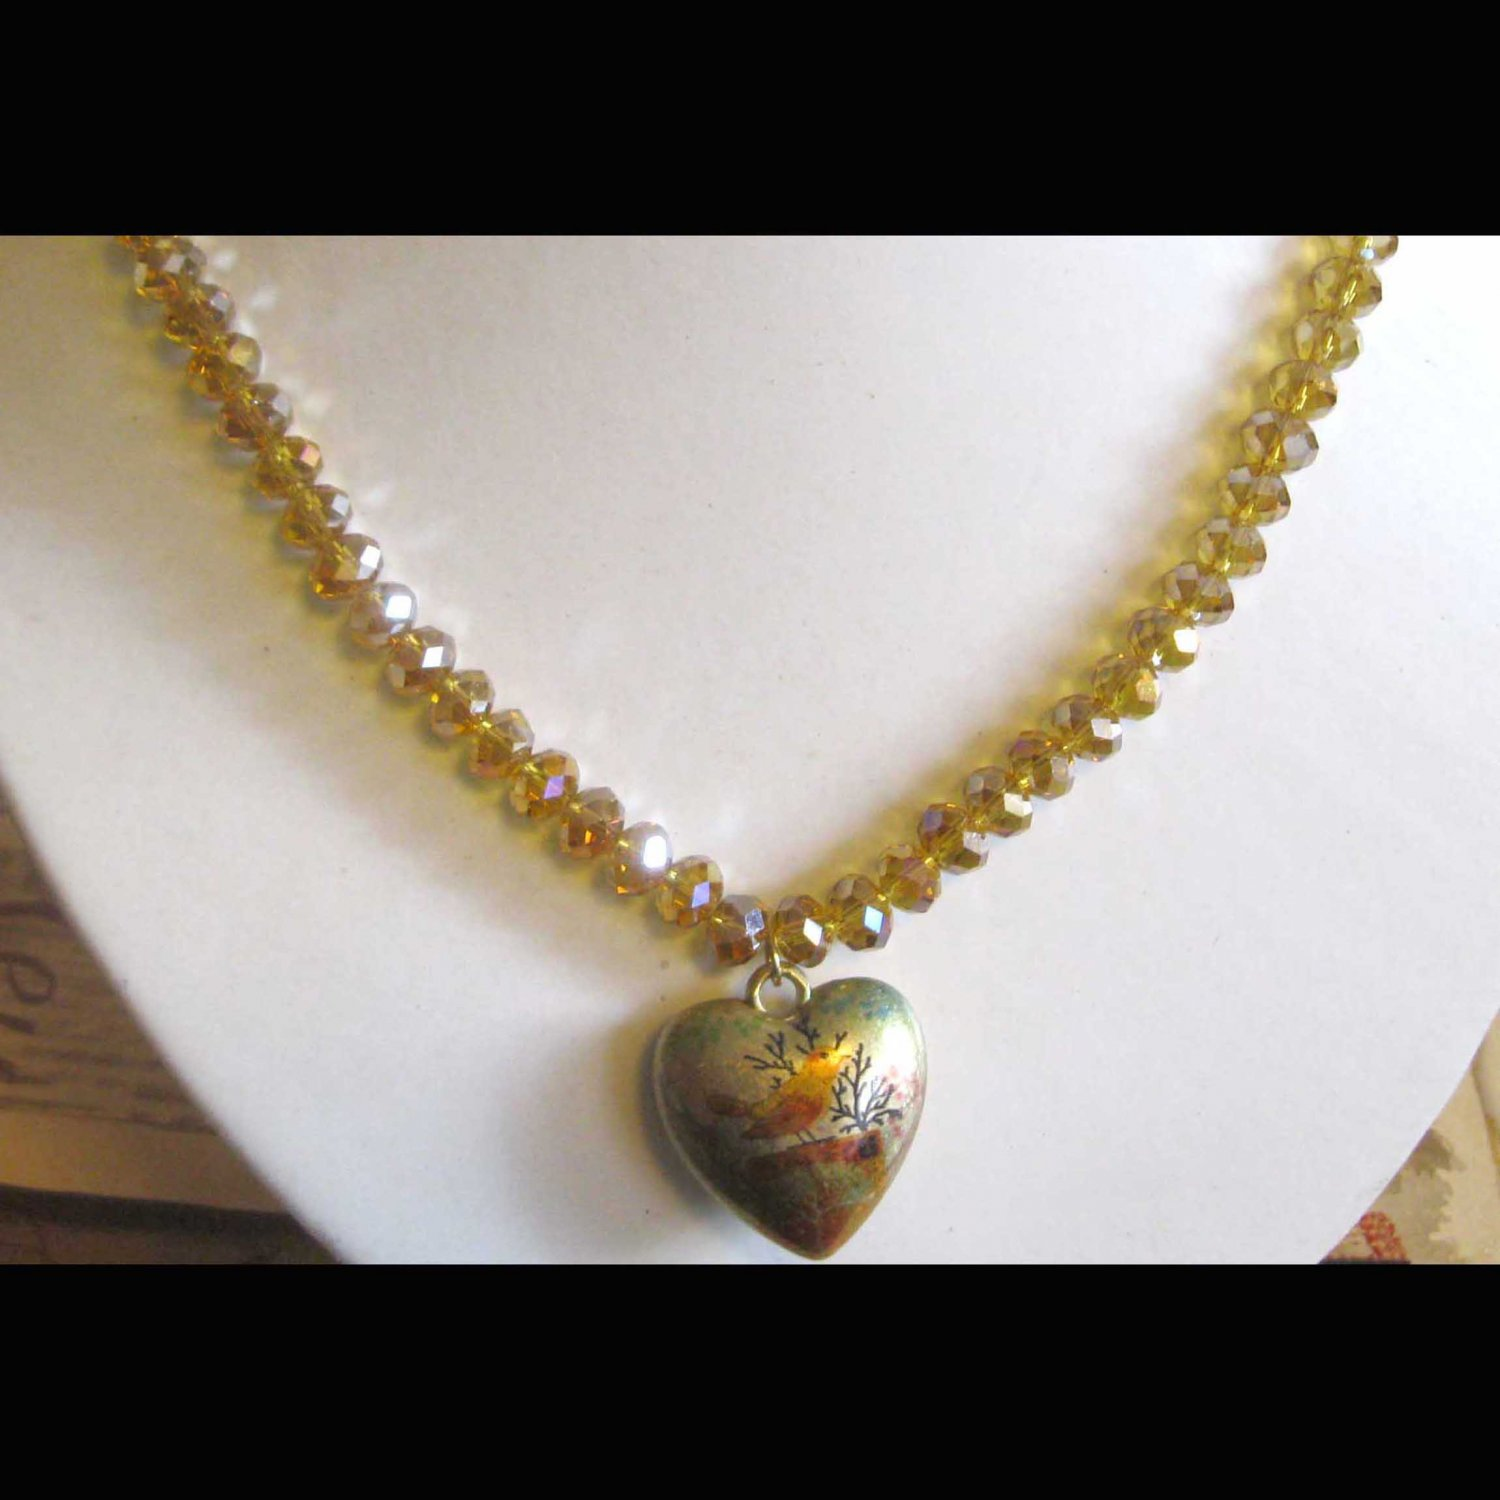 Gold fashion necklace with heart bird pendant